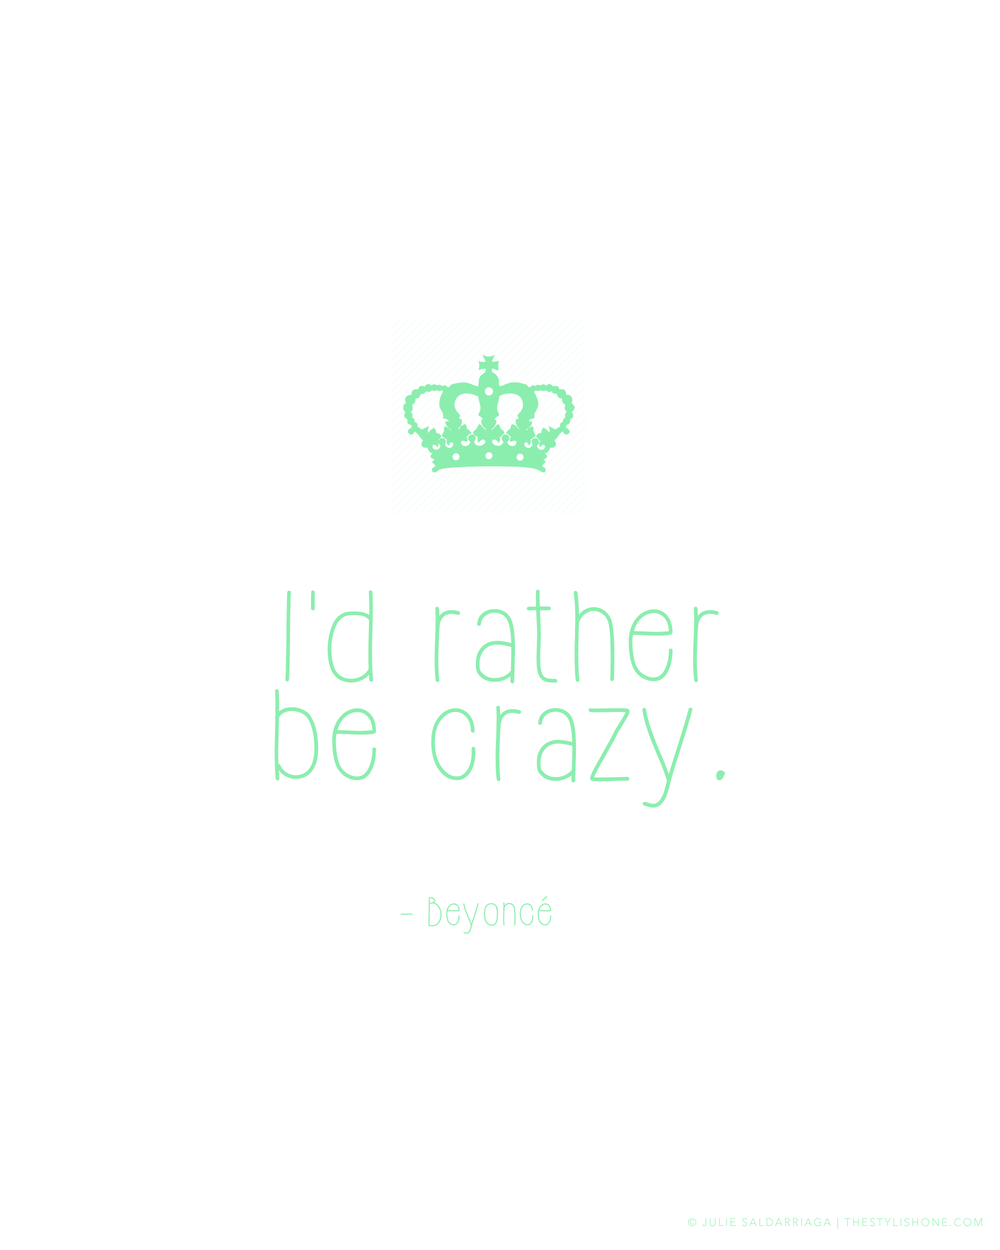 cray_bey.png